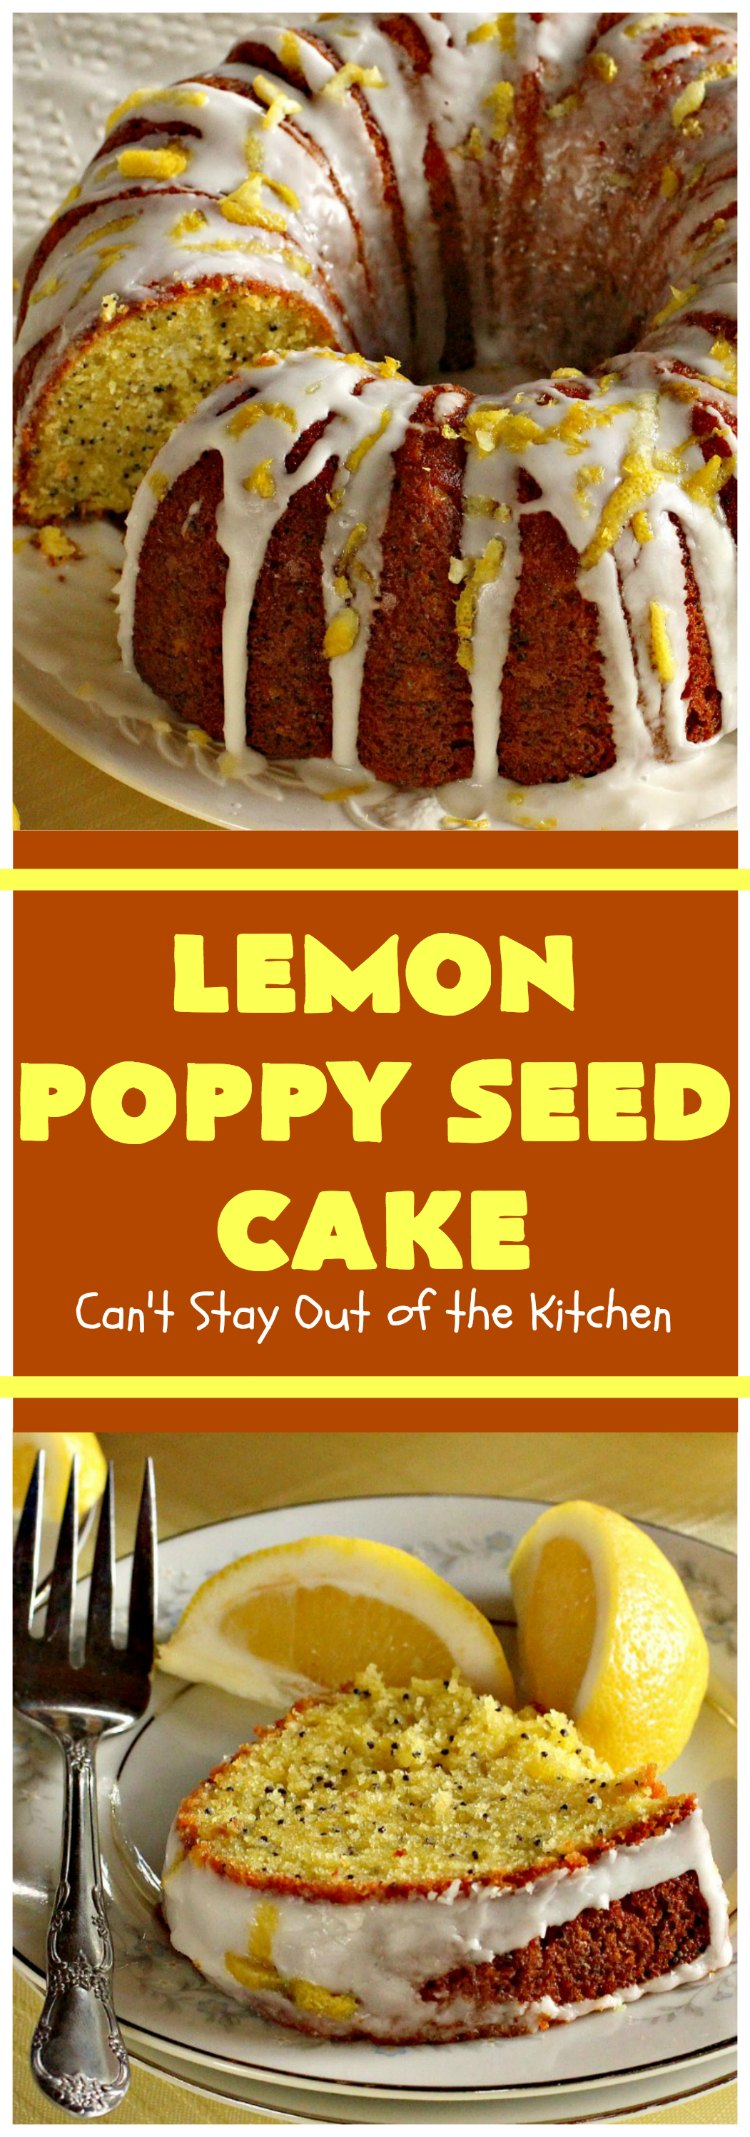 Lemon Poppy Seed Cake   Can't Stay Out of the Kitchen